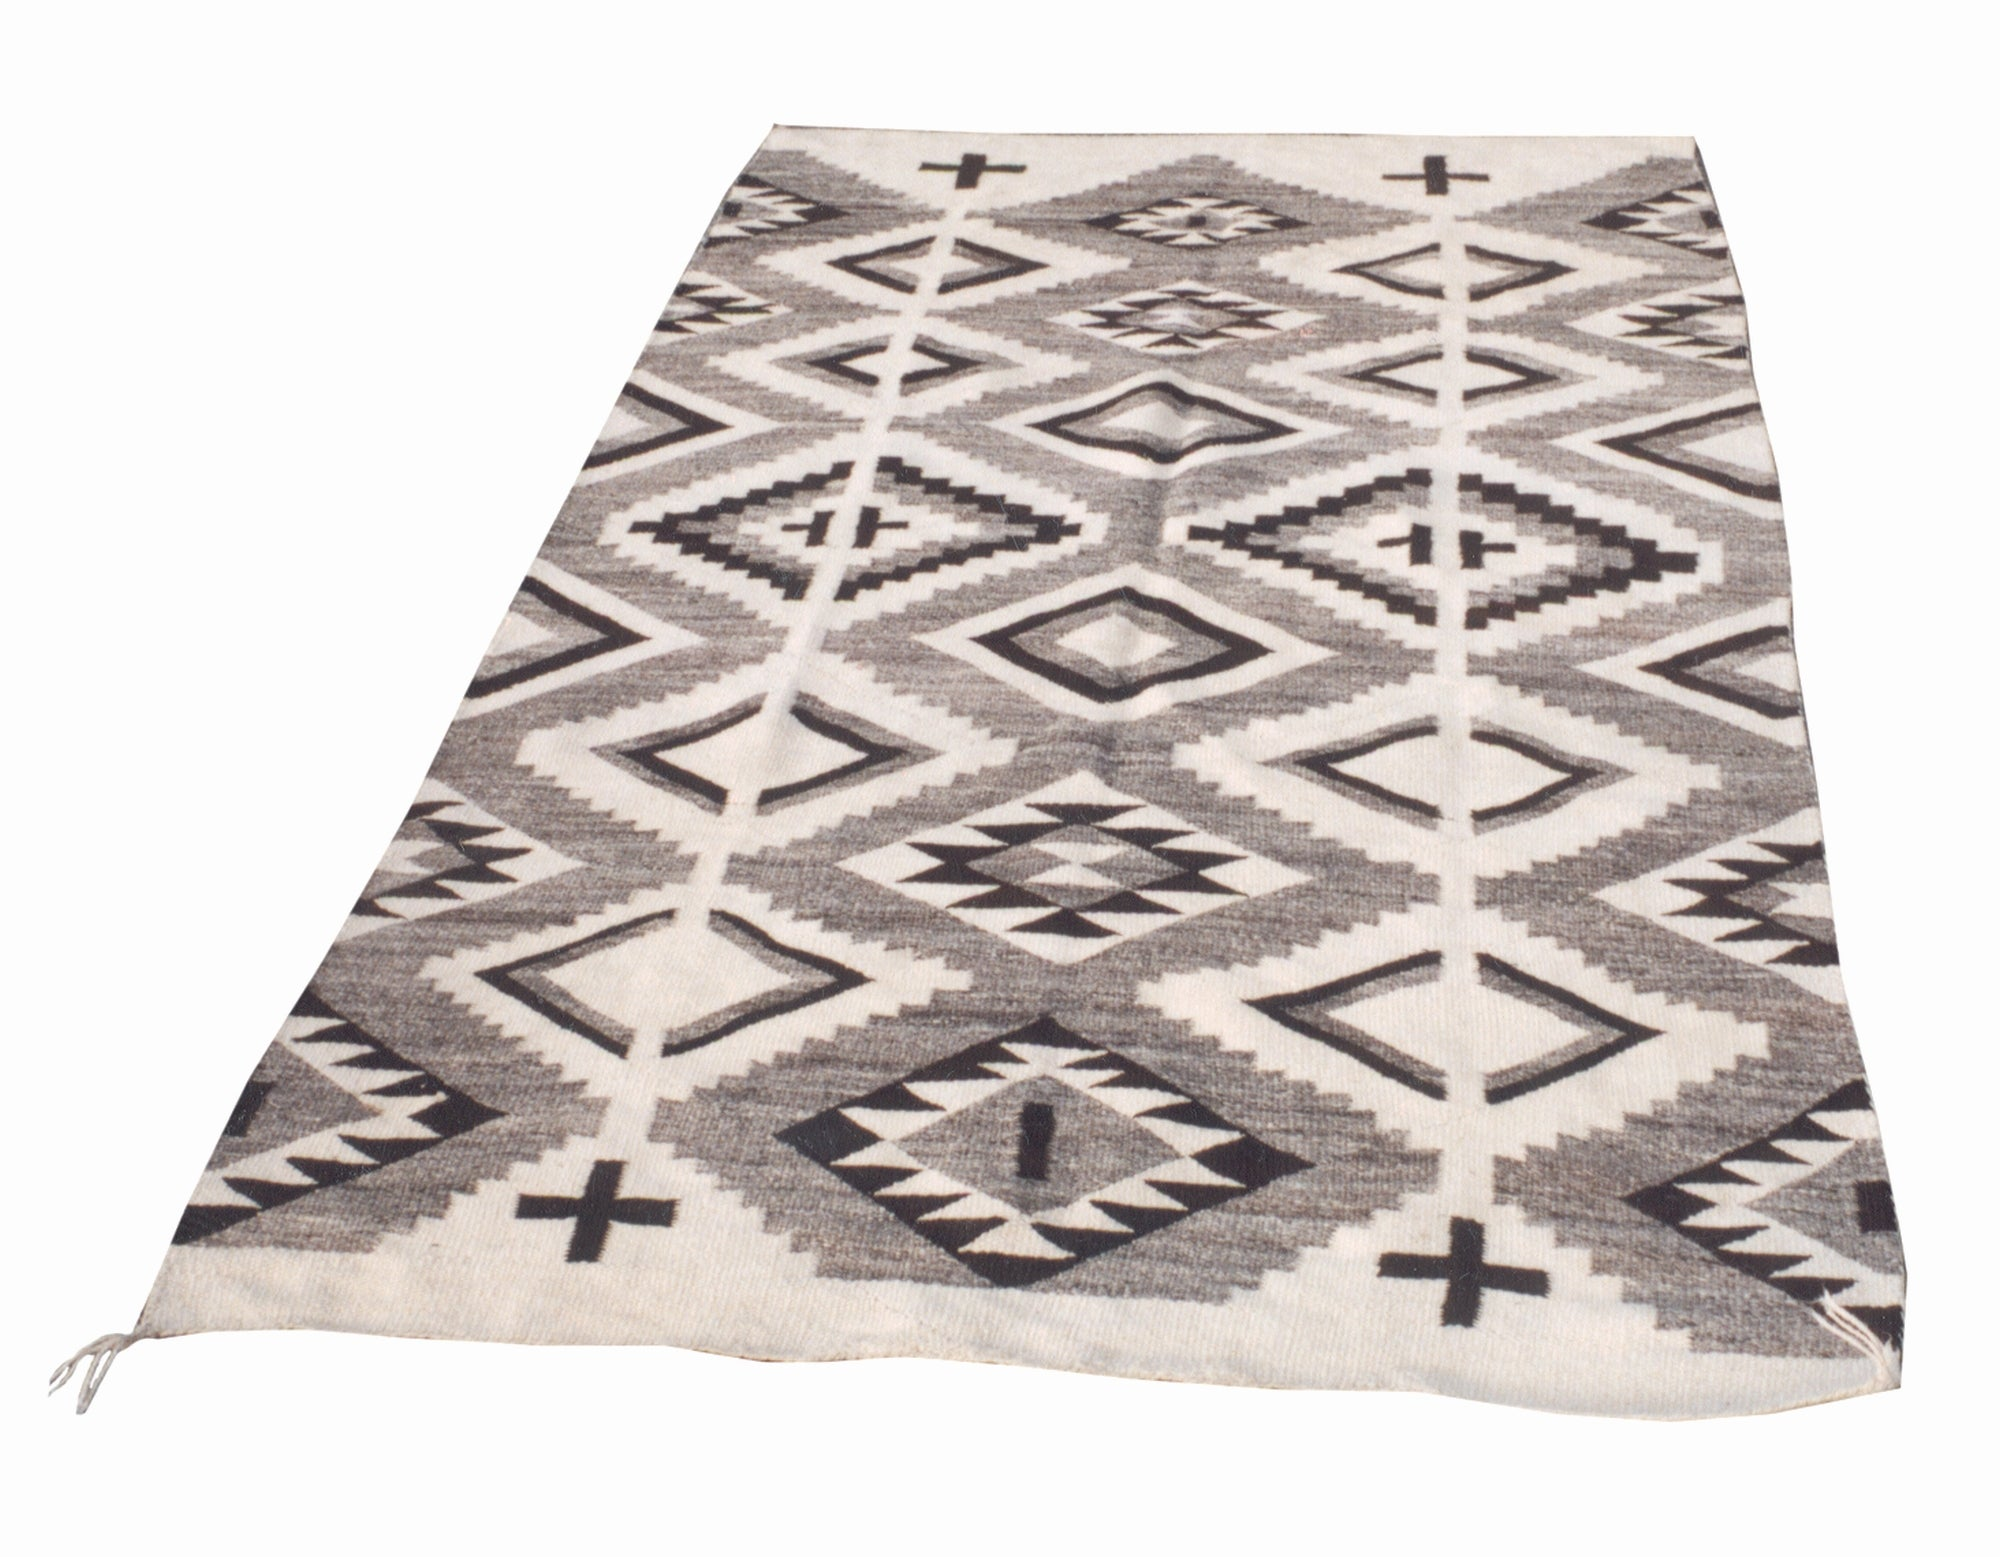 Hubbell Transitional; Natural with Crosses 6' to 8', blankets, hubbell, navajo, weavings